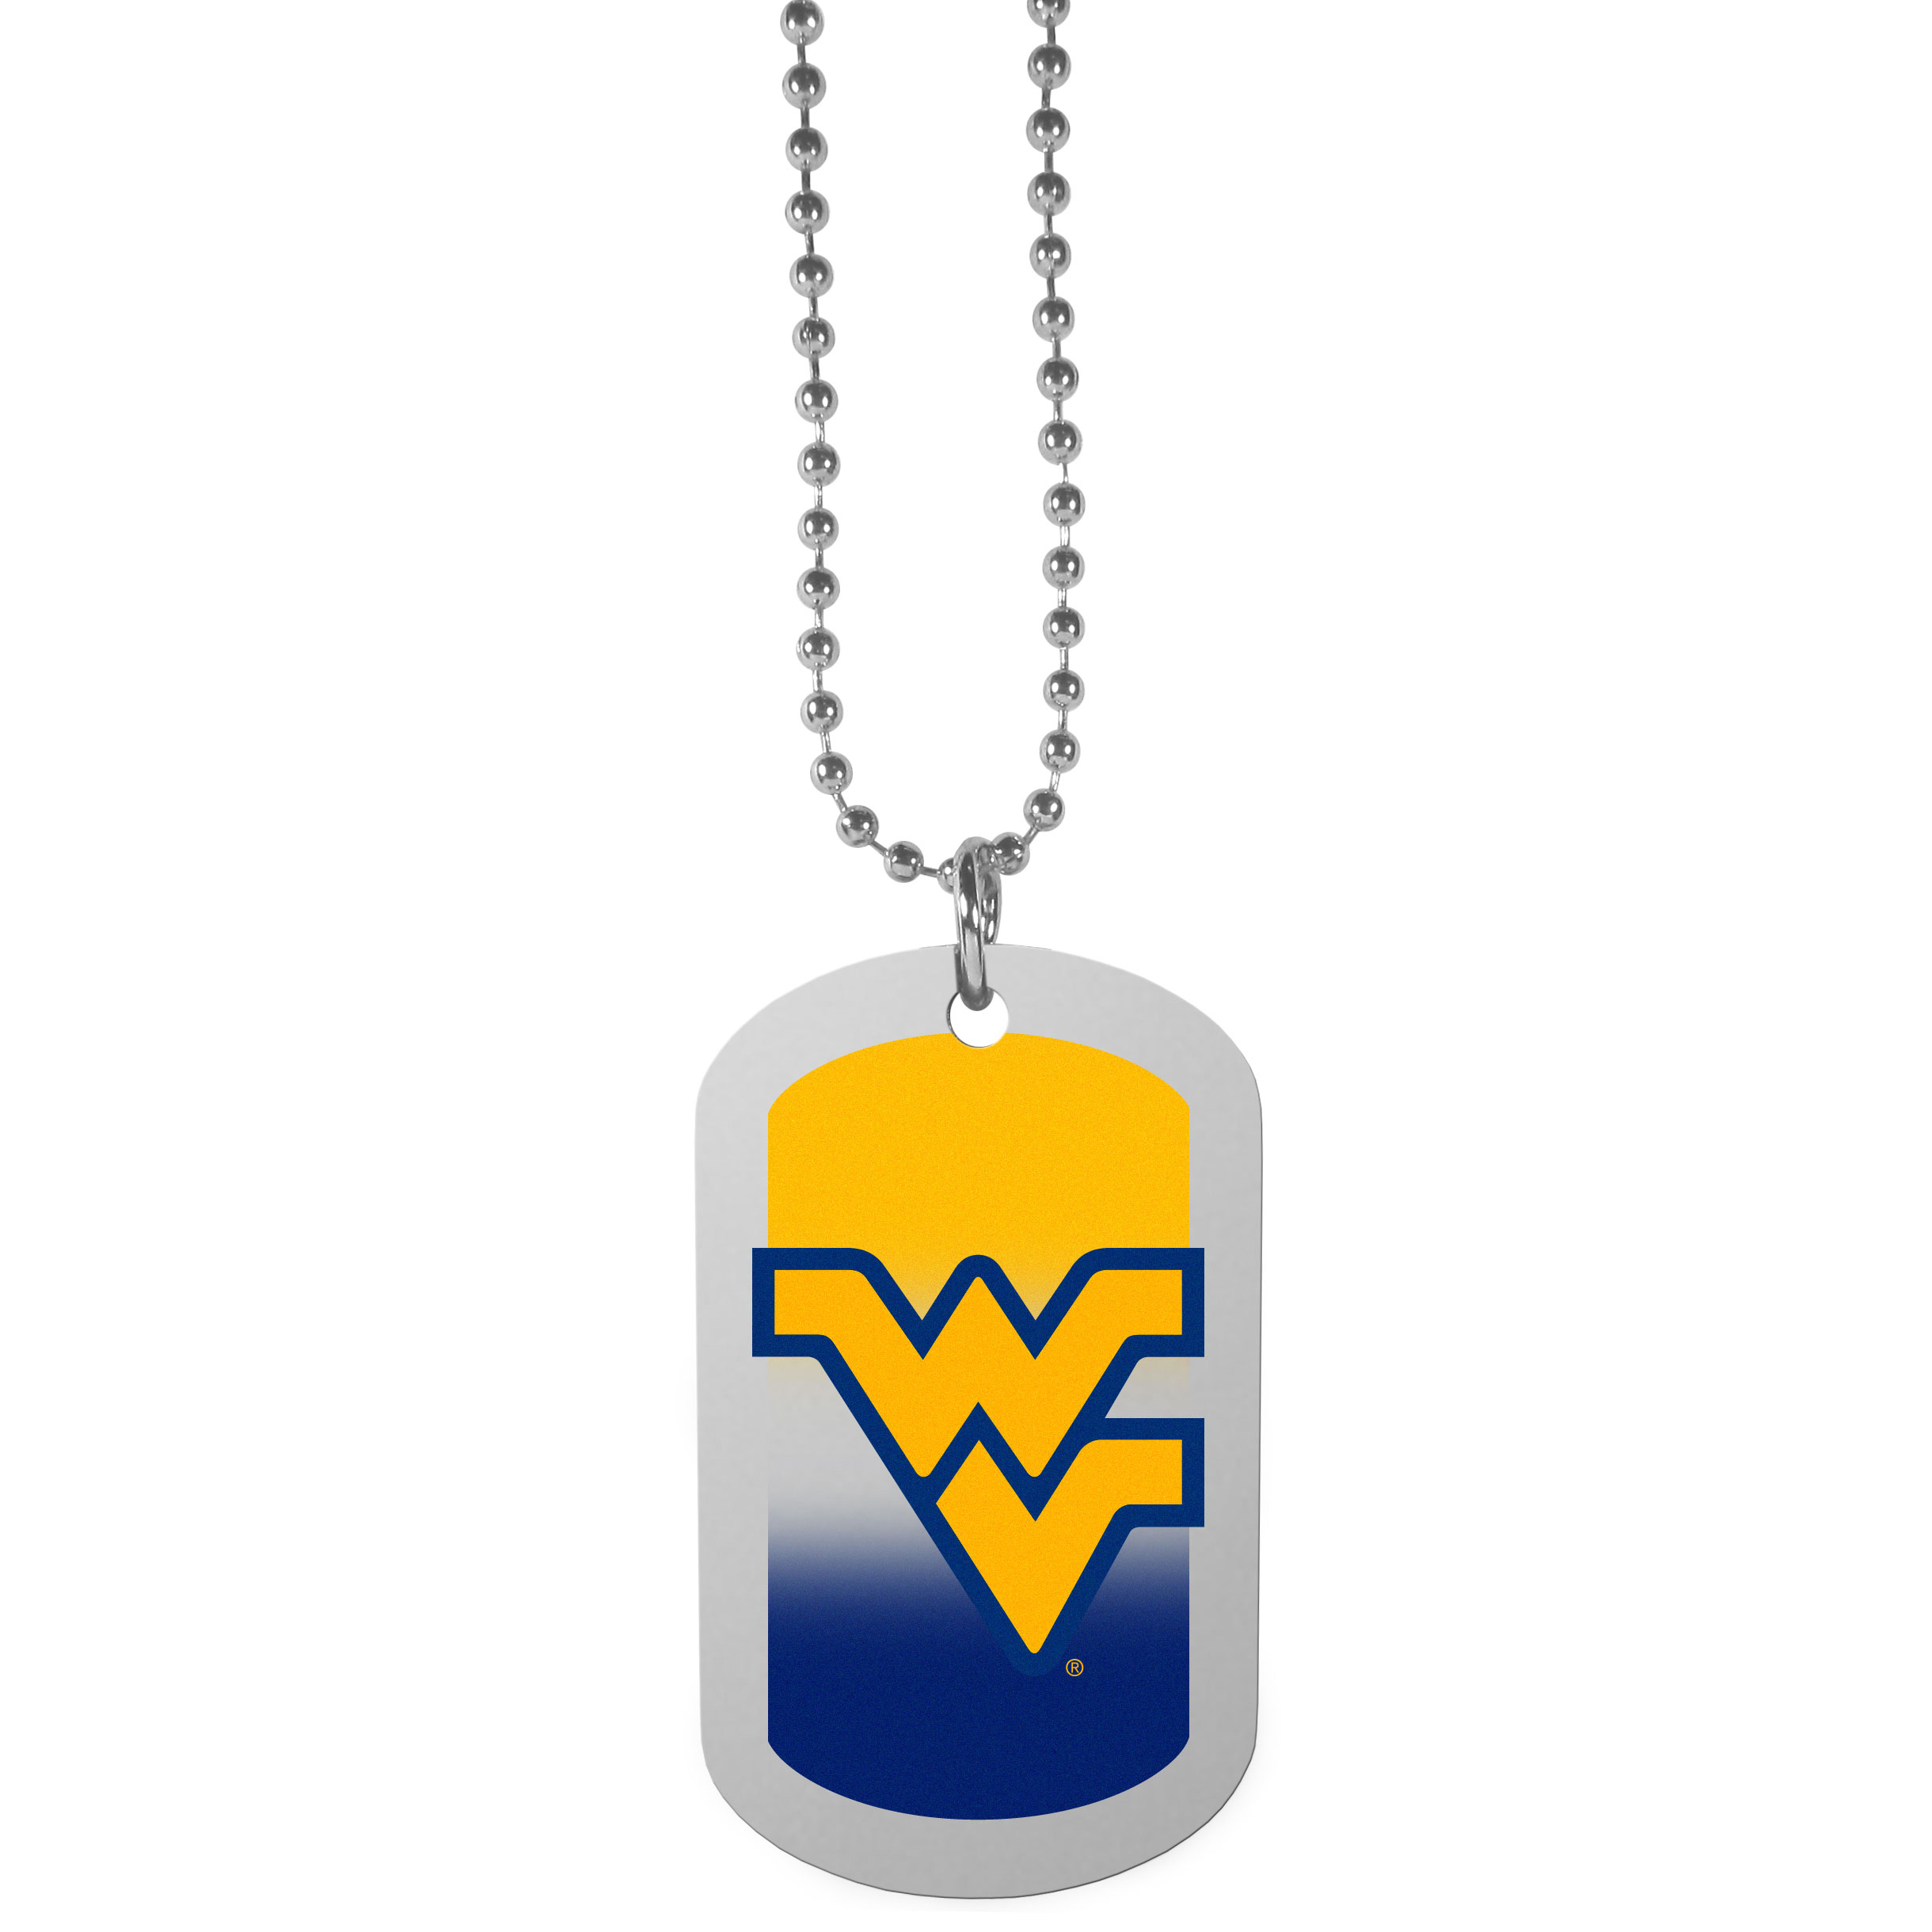 W. Virginia Mountaineers Team Tag Necklace - Dog tag necklaces are a fashion statement that is here to stay. The sporty version of the classic tag features a gradient print in team colors featuring a full color team logo over a high polish tag to create a bold and sporty look. The tag comes on a 26 inch ball chain with a ball and joint clasp. Any W. Virginia Mountaineers would be proud to wear this attractive fashion accessory.